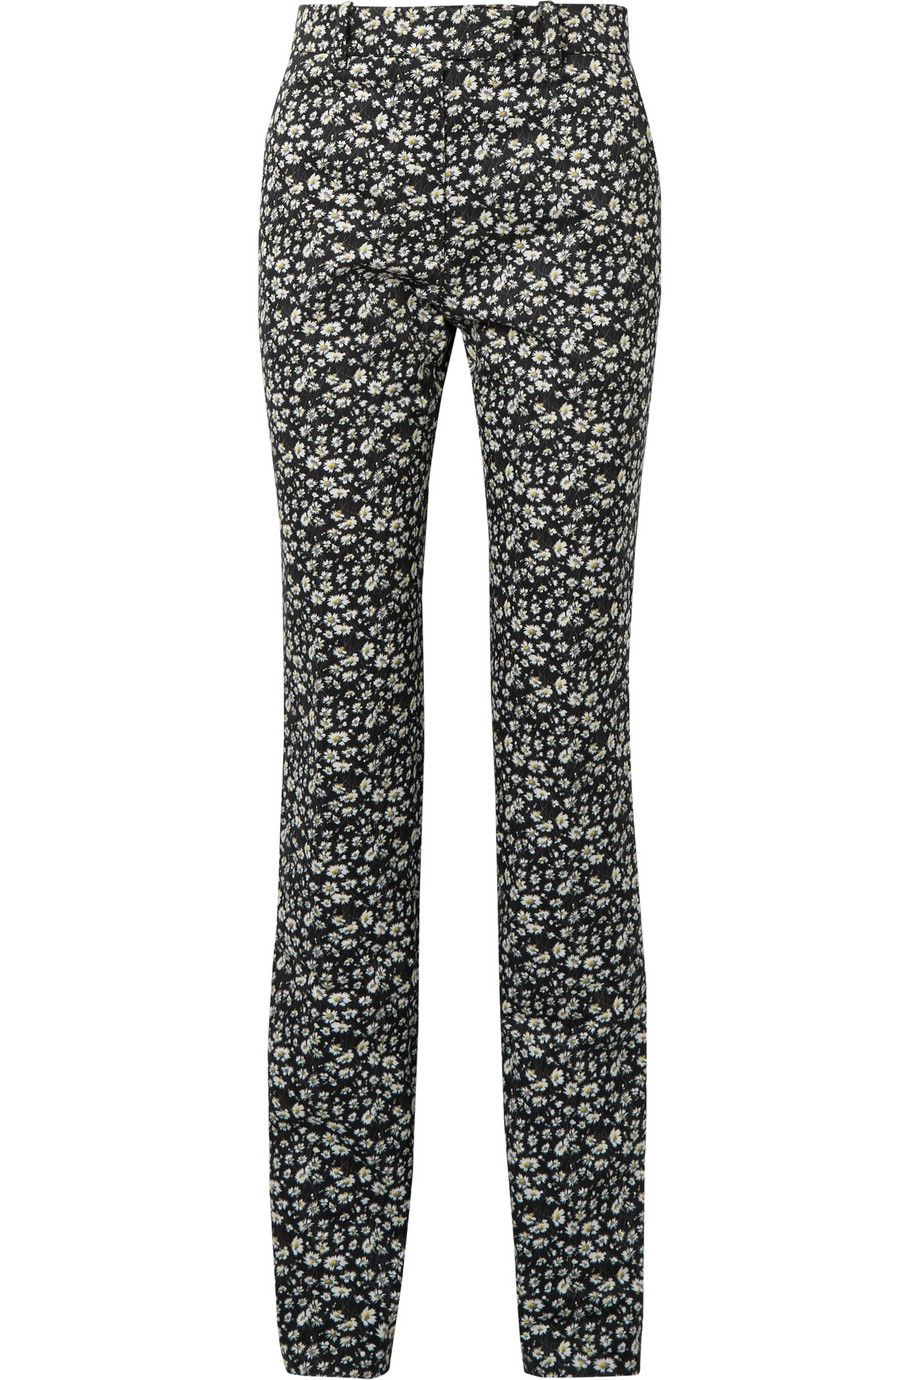 Striped Floral-print Cotton-twill Skinny Pants - Black CALVIN KLEIN 205W39NYC Free Shipping Inexpensive Safe Payment Outlet With Paypal Order Online For Cheap Discount Cheap Purchase xK8AK0A2VW